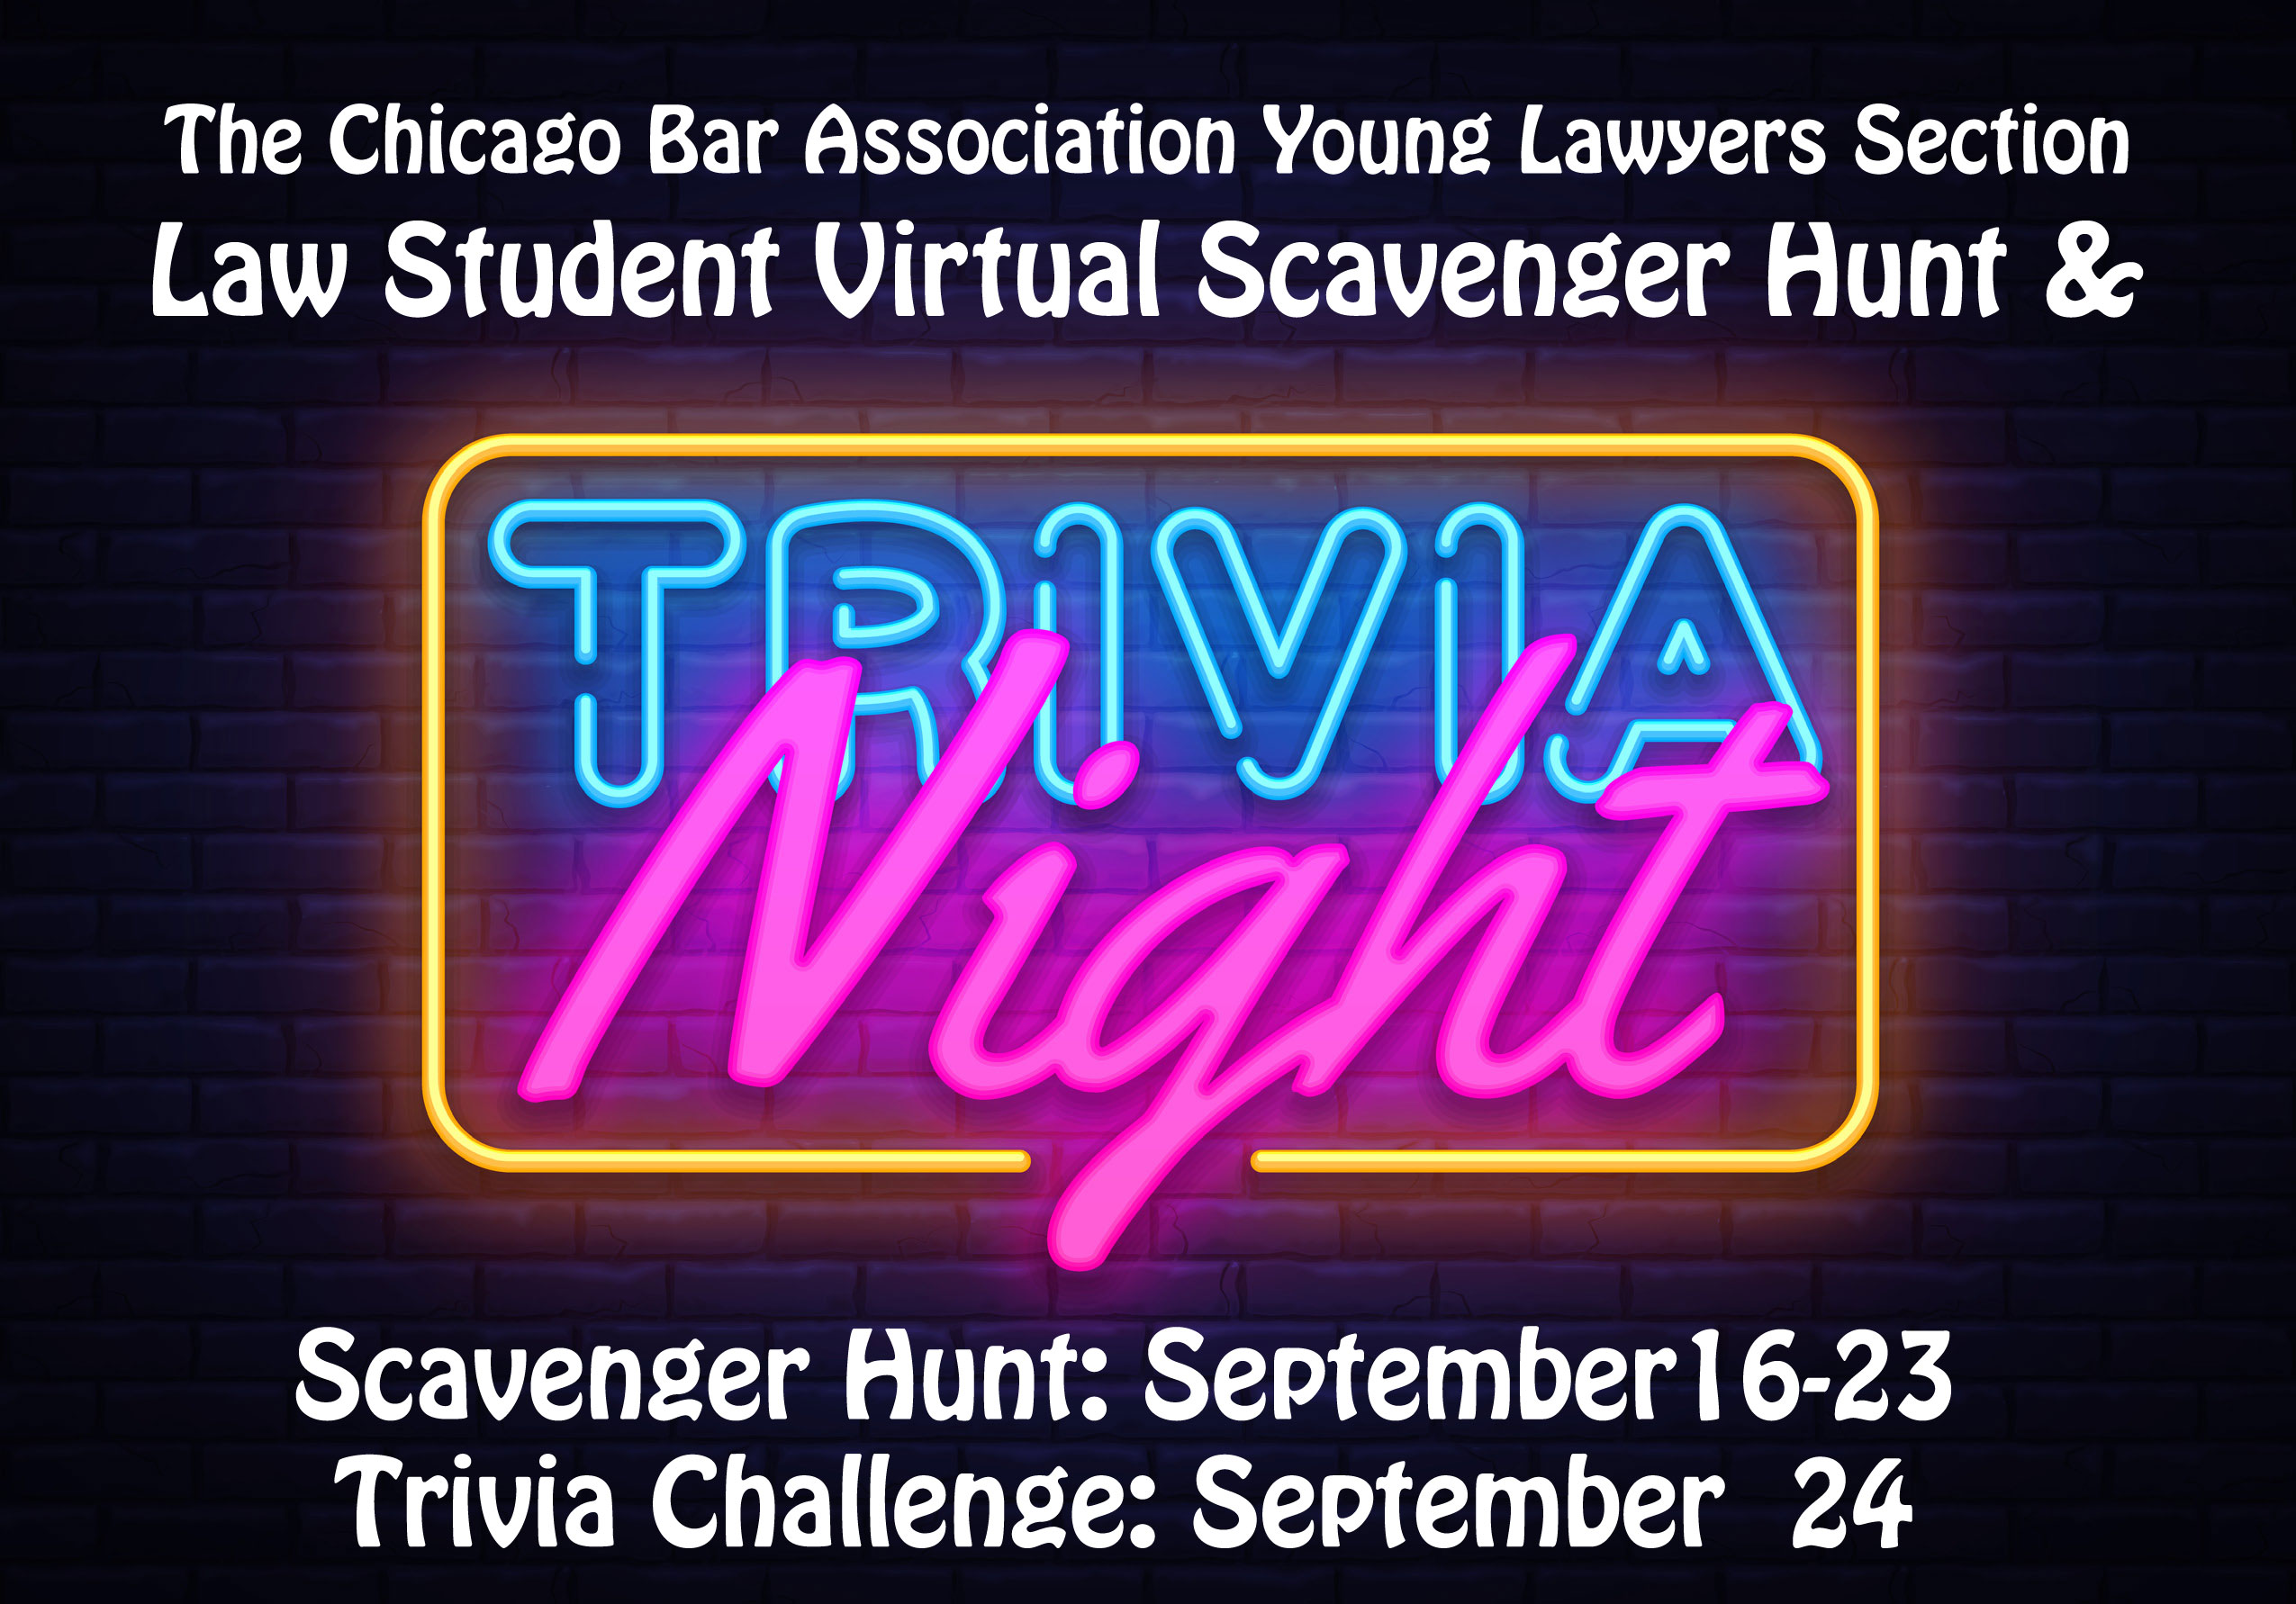 Law Student Scavenger Hunt & Trivia Night